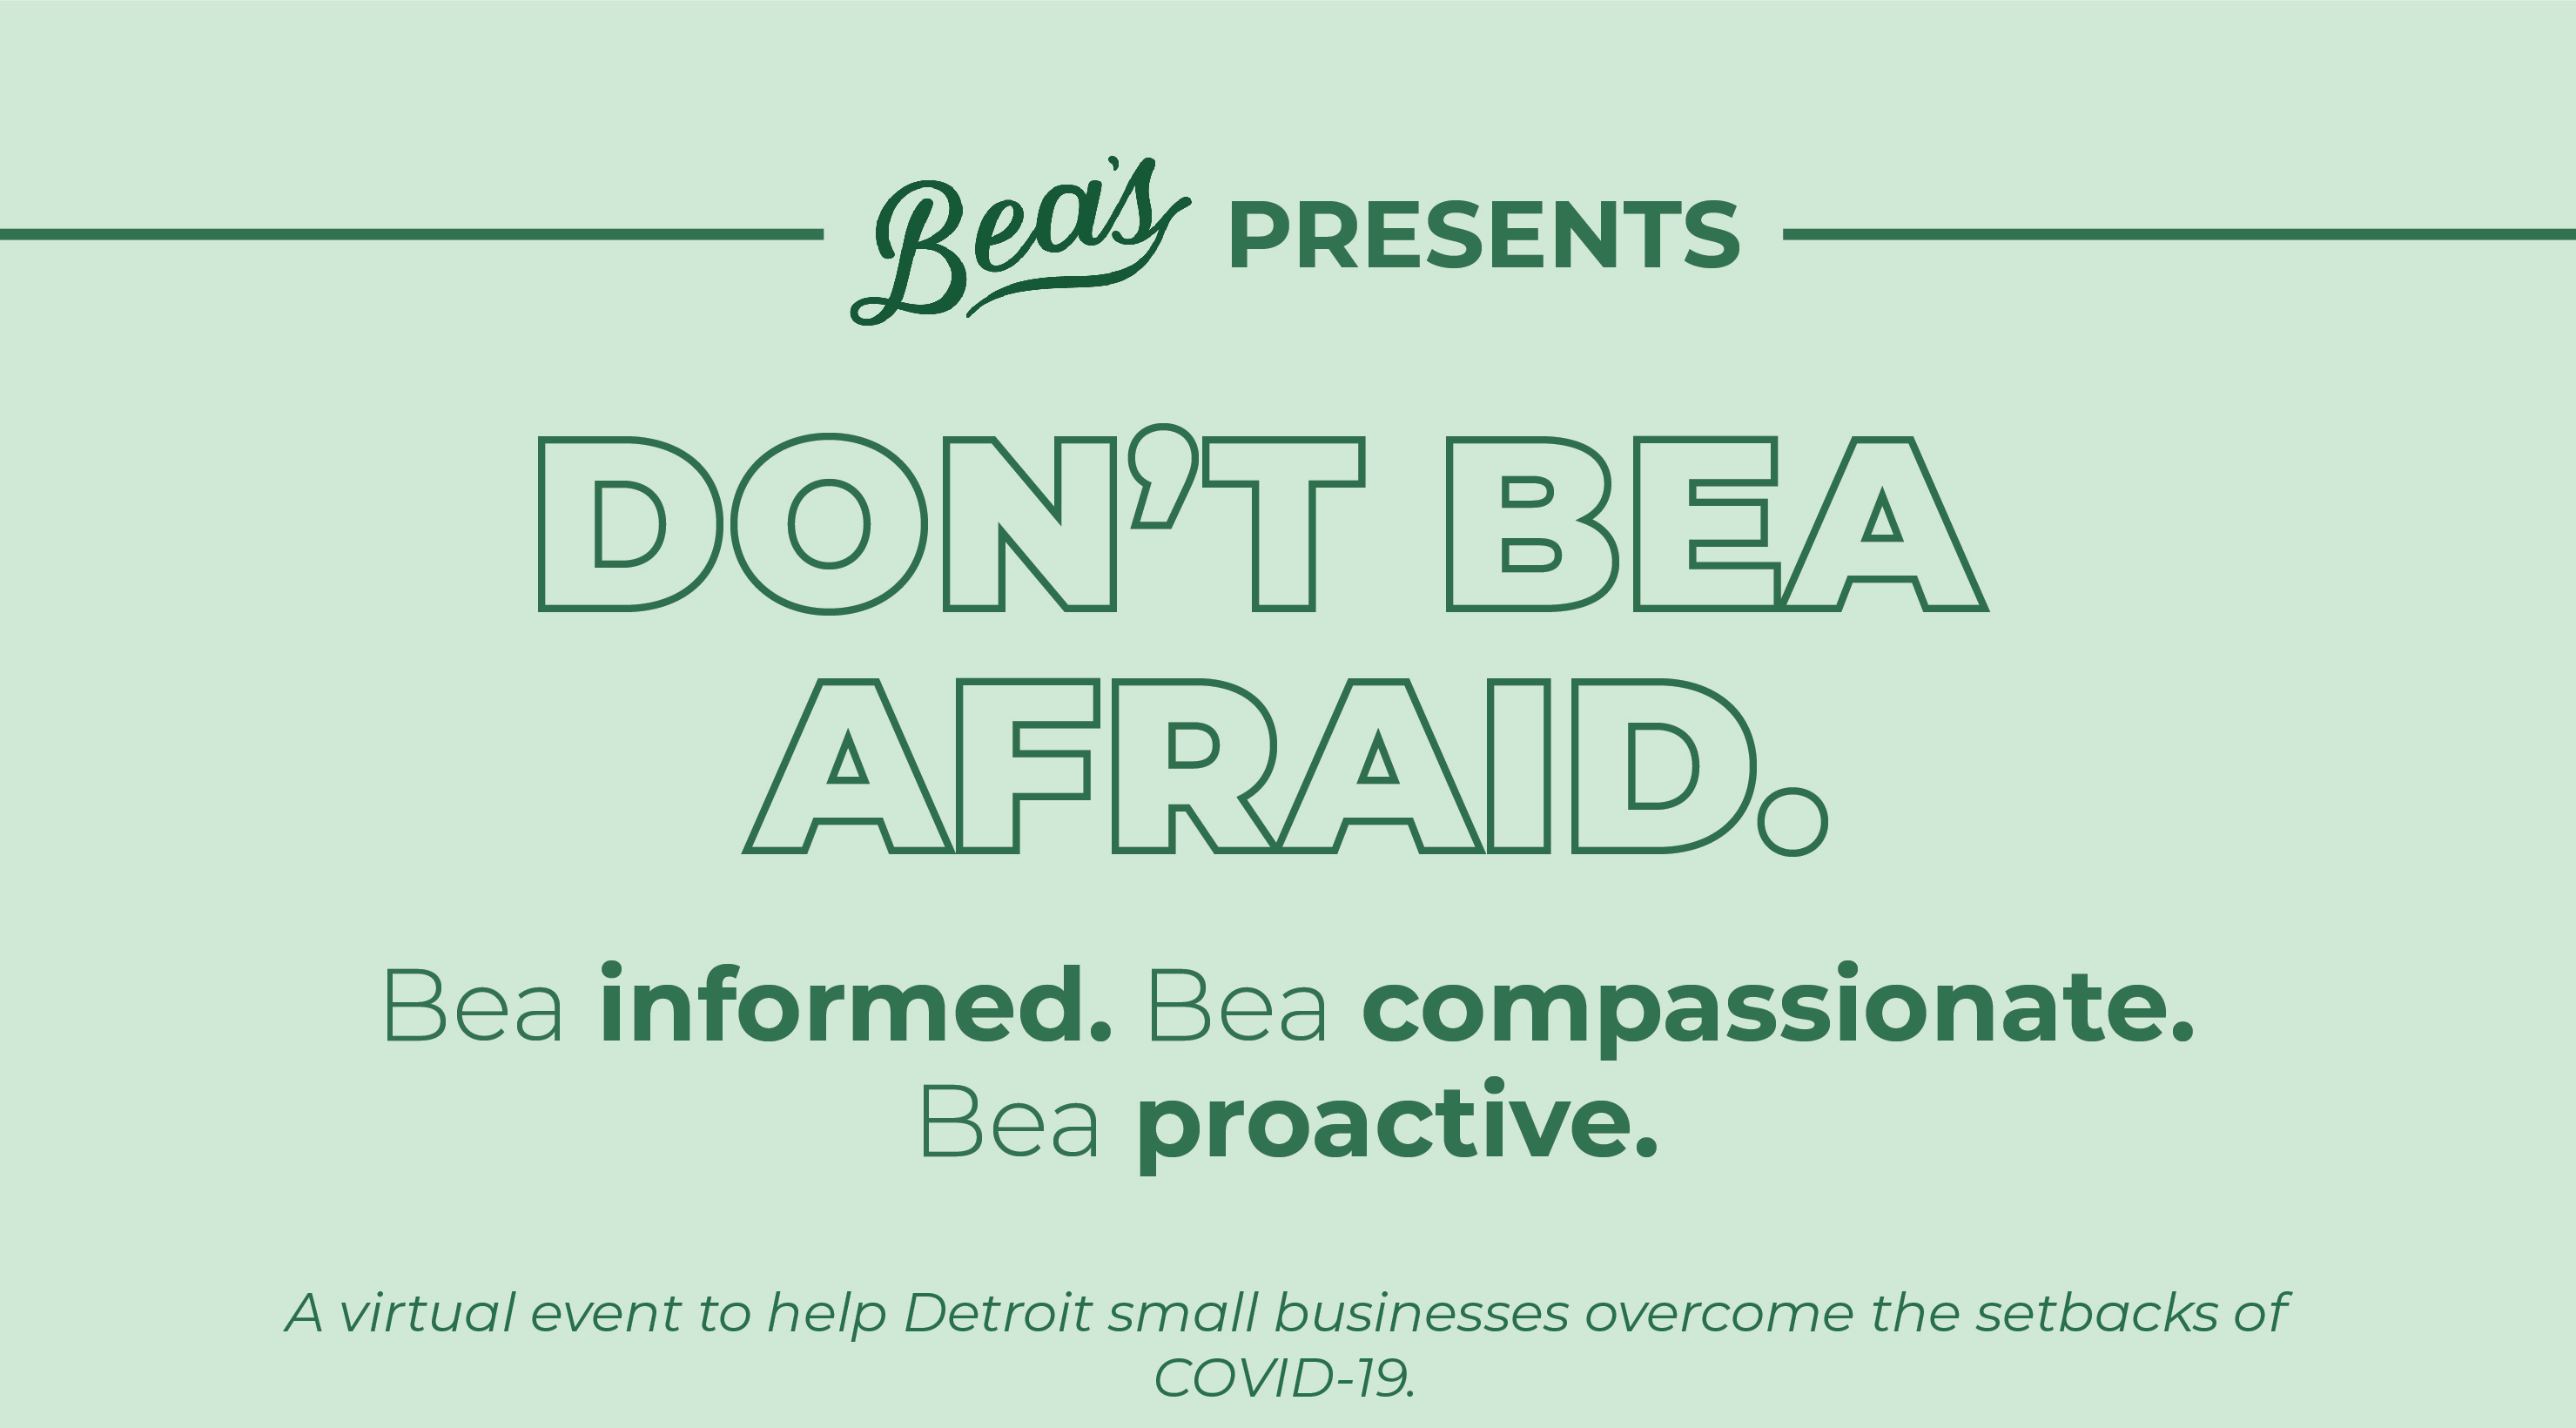 Bea's to Host Don't Bea Afraid: A Virtual Event for Small Businesses in Detroit